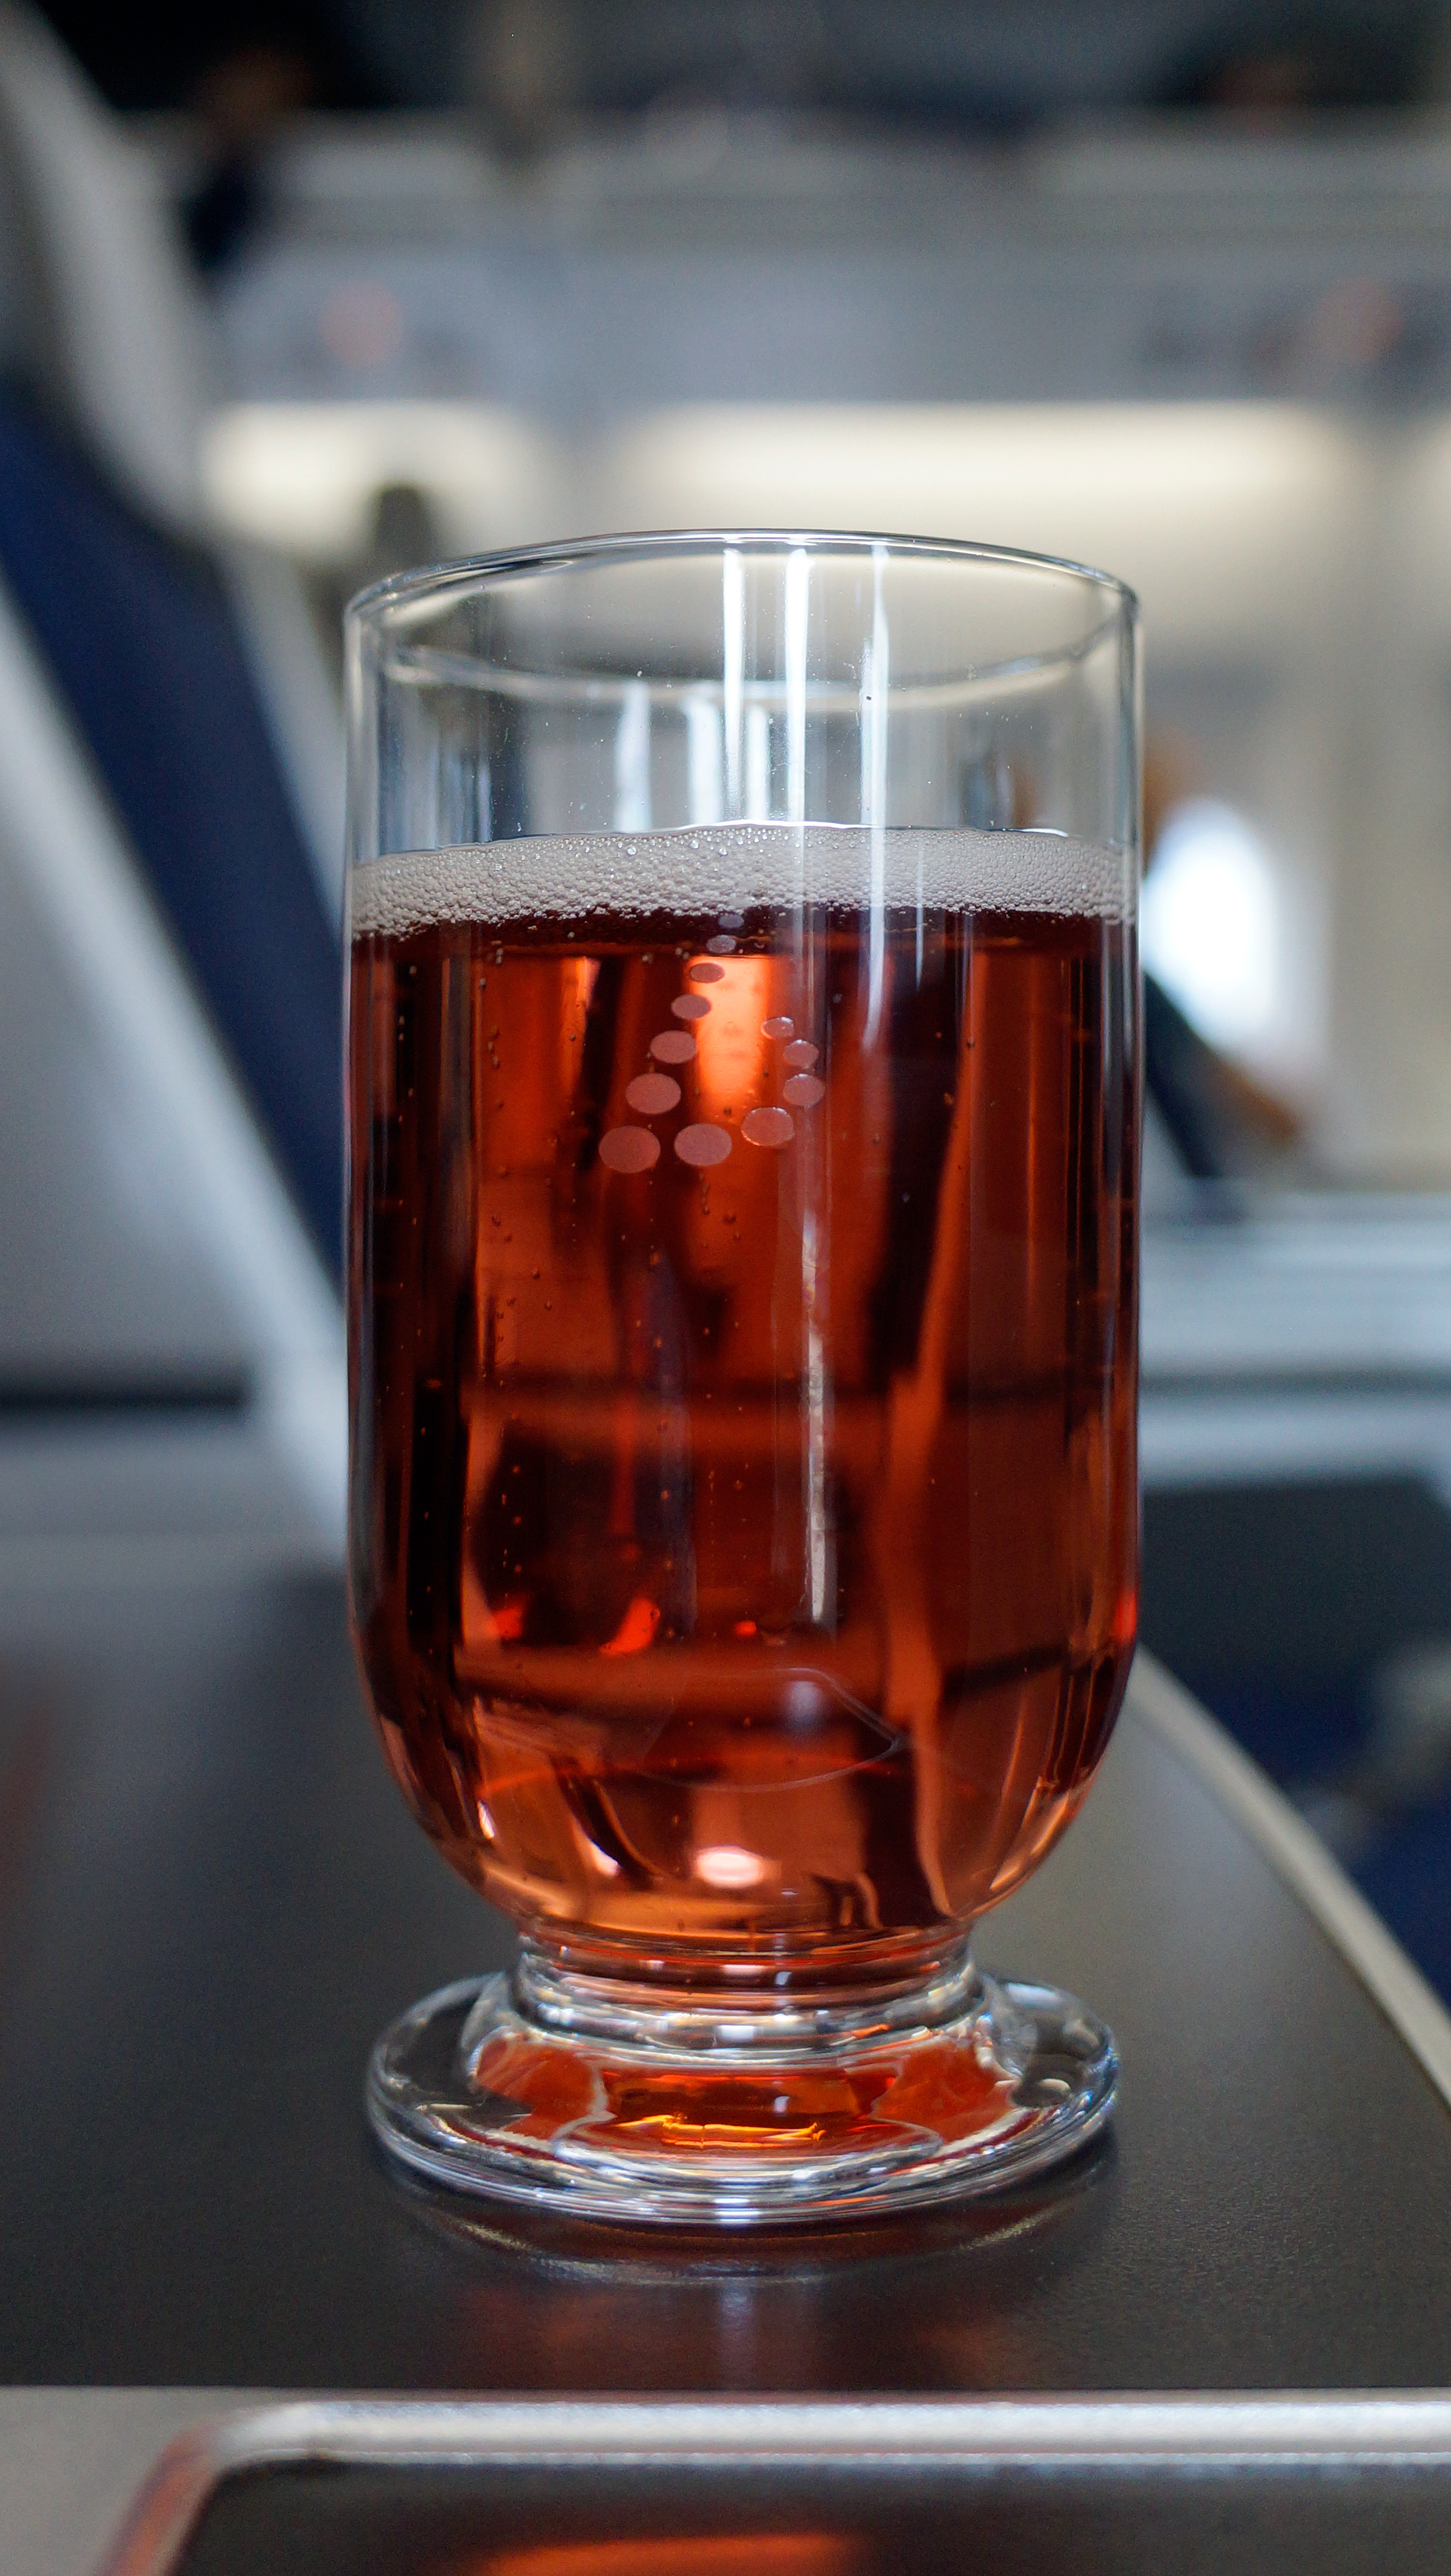 Brussels Airlines 2016 - Champagne